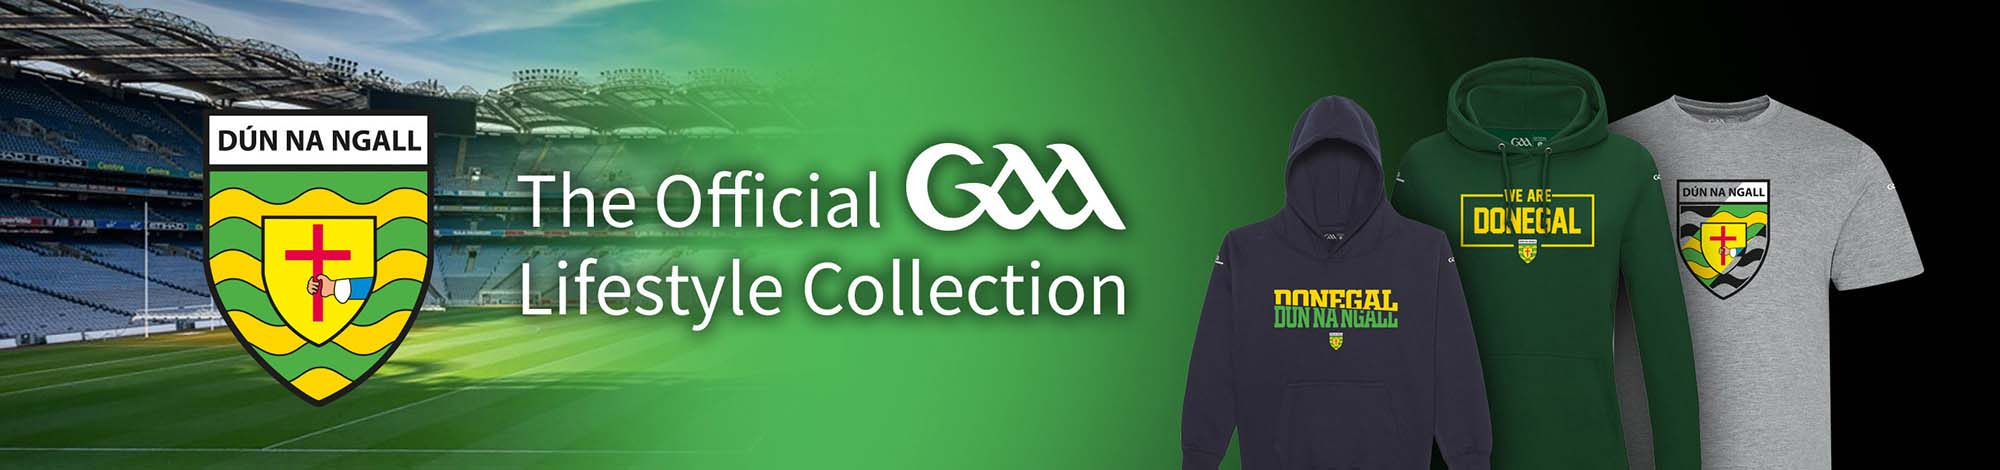 Donegal GAA Clothing